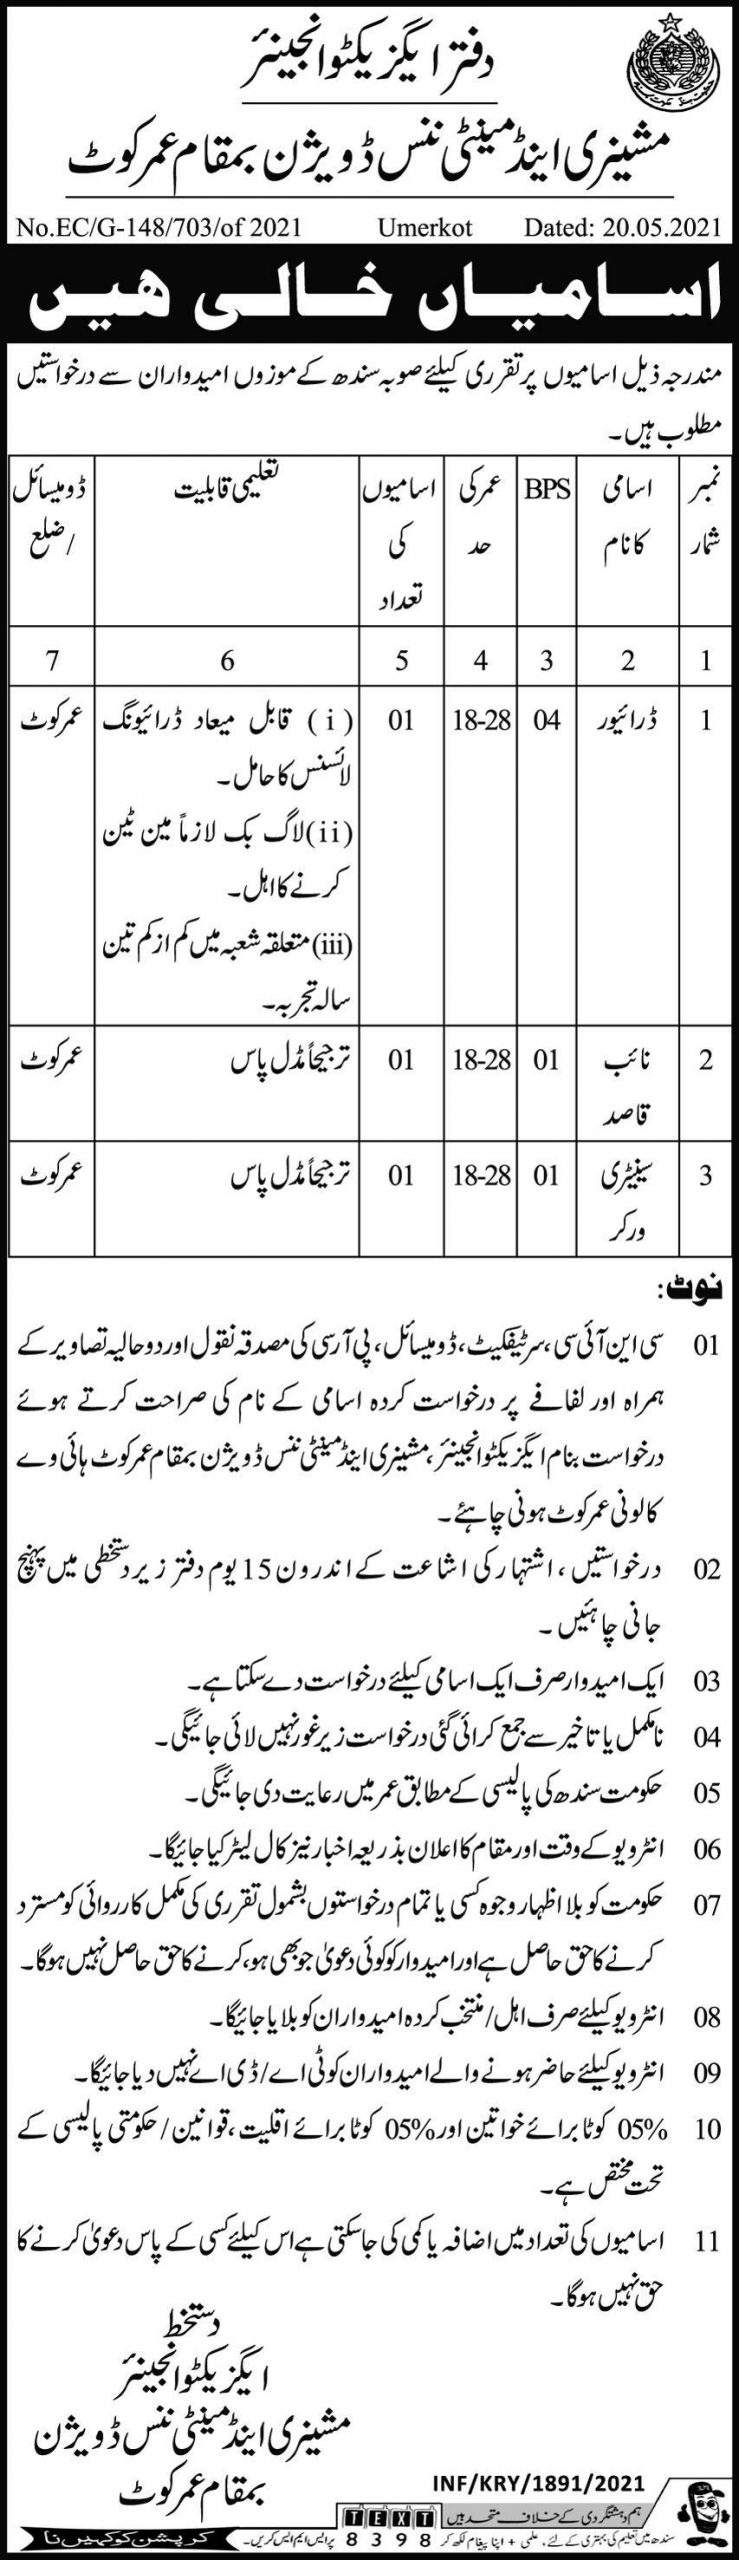 Government Jobs in Umerkot at Machinery and Maintenance Division 2021